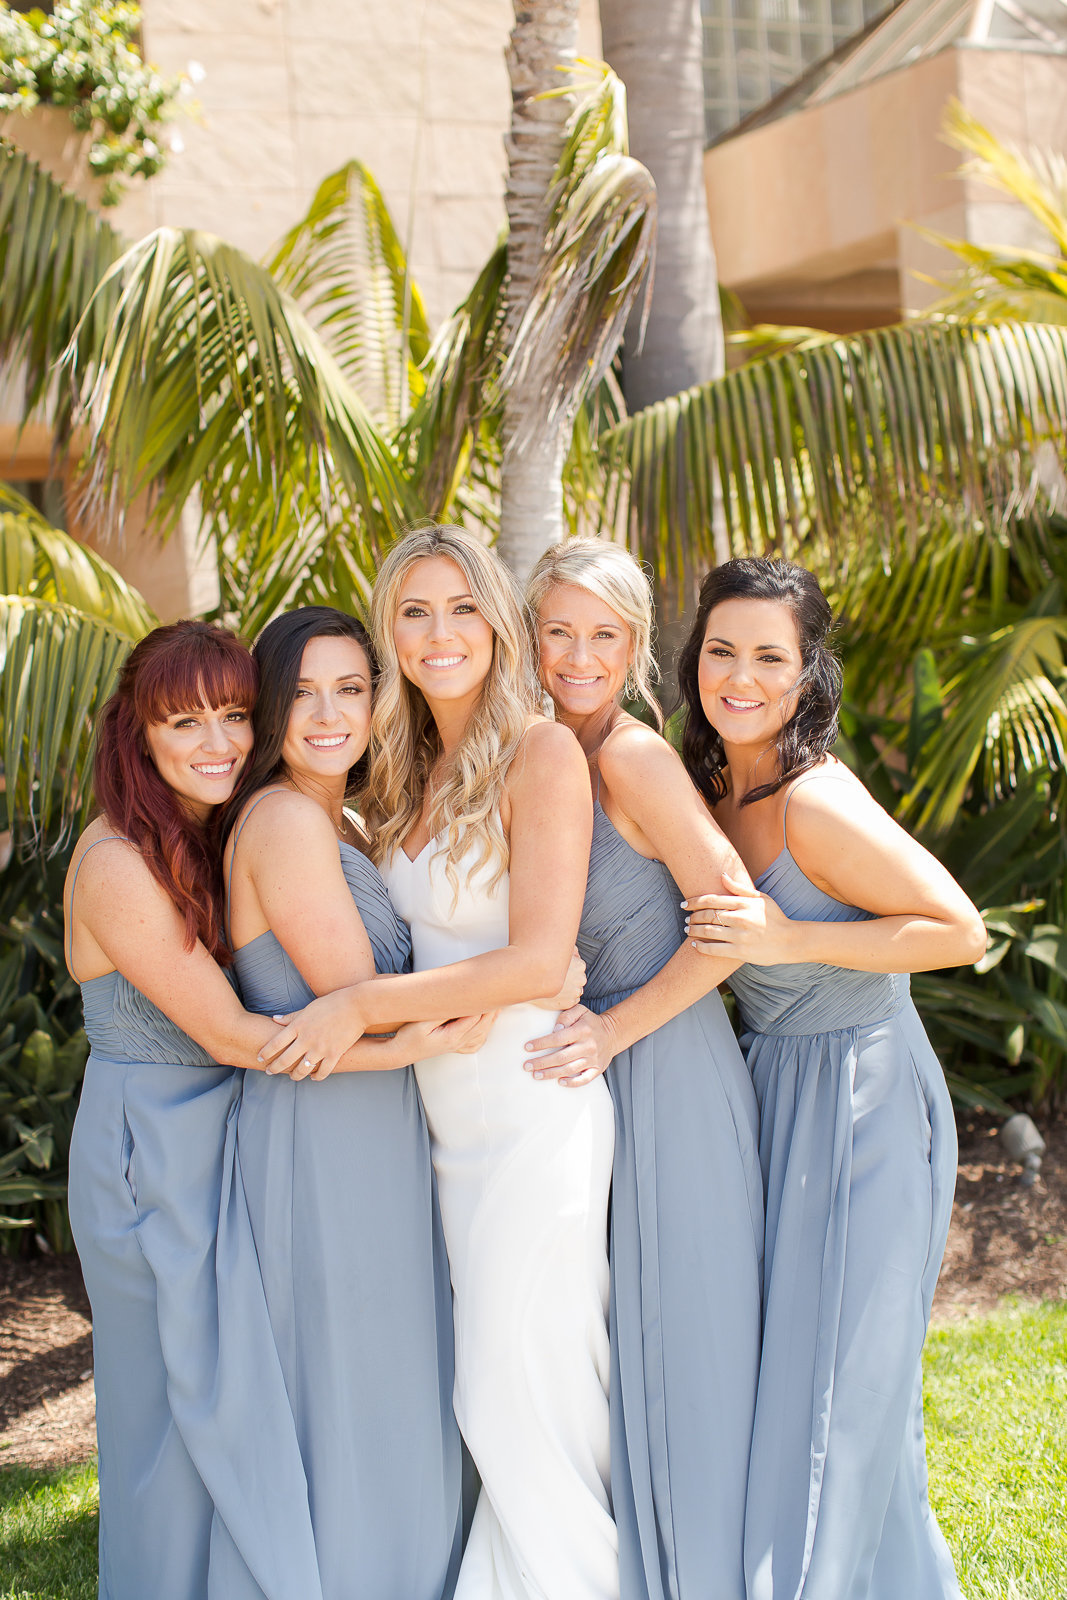 Newport Beach Caliornia Destination Wedding Theresa Bridget Photography-34